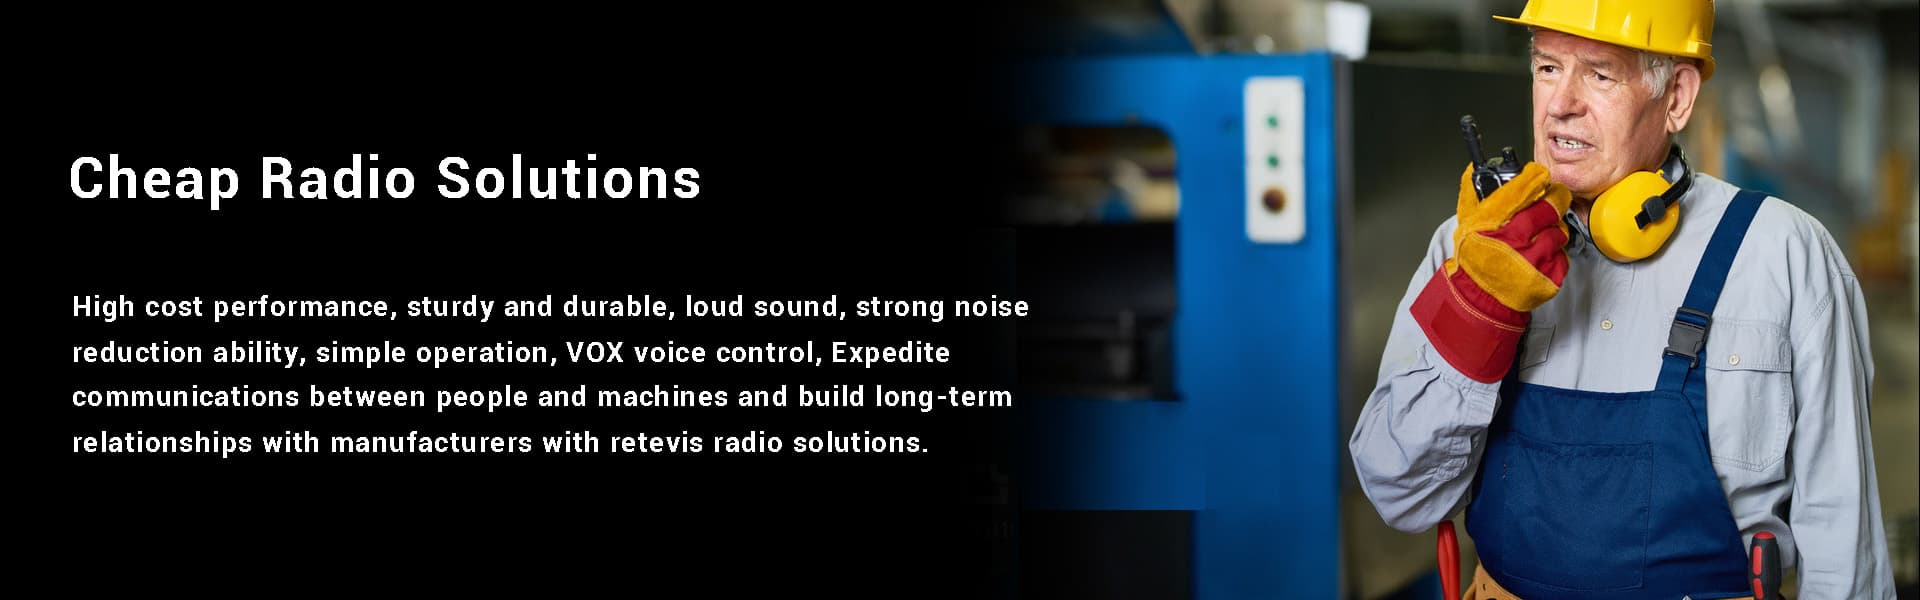 retevis-radio-solutions-manufacturing-radio-solutions-banner